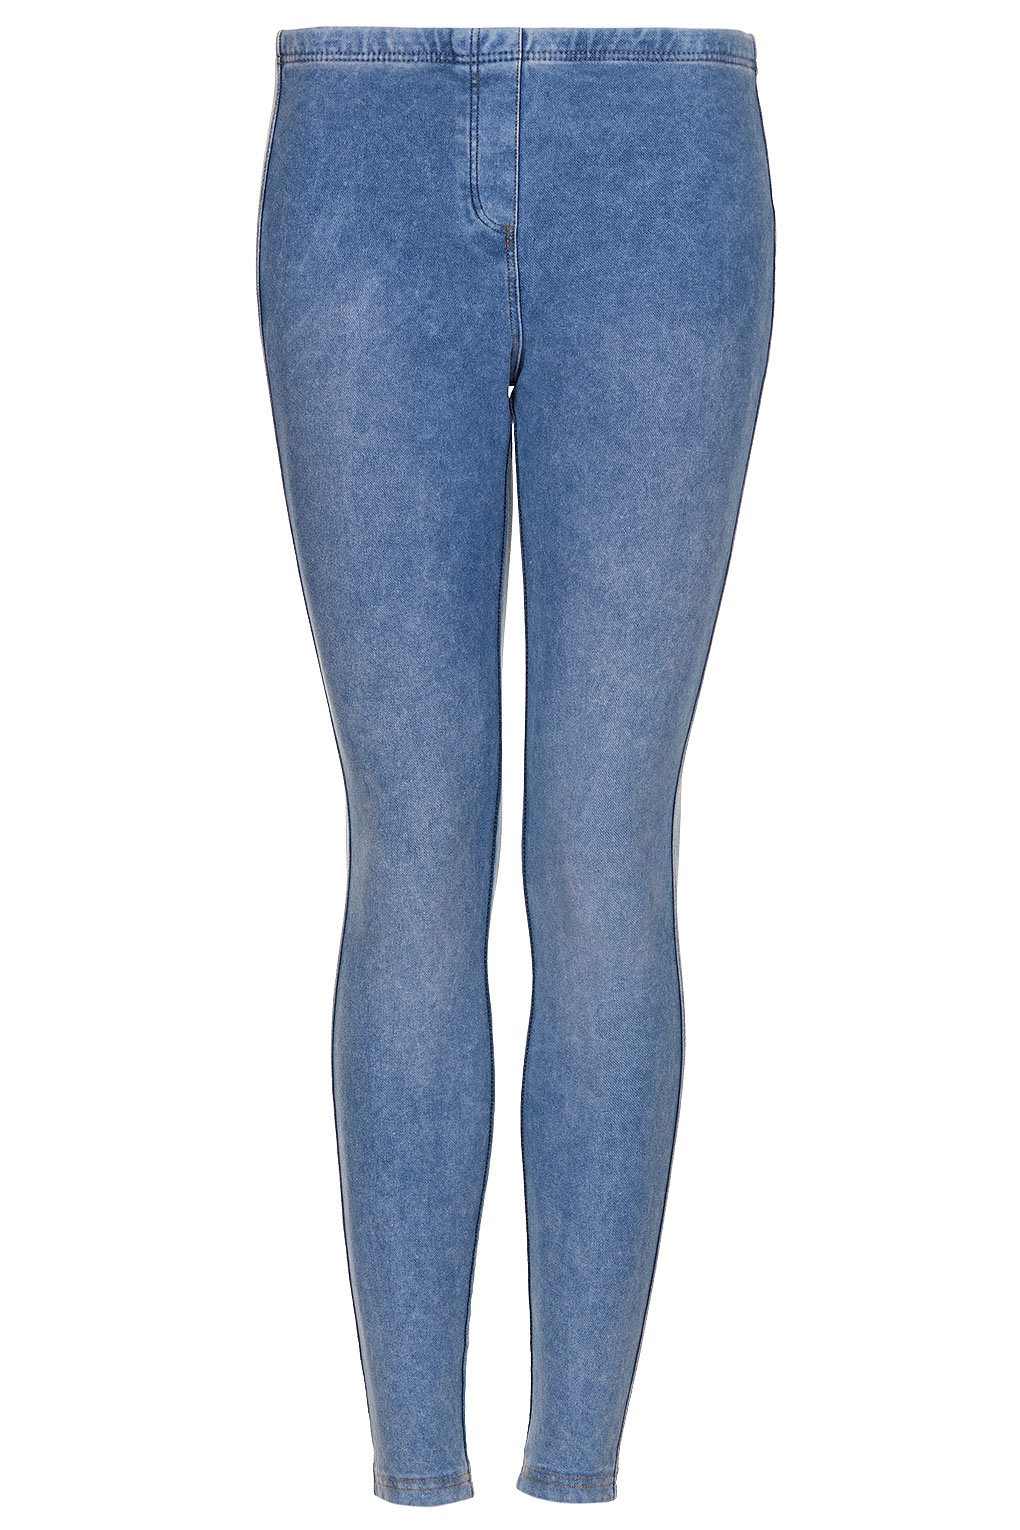 While budding fashion begins with silhouette flattering jeggings and denim leggings, £ Dark Wash Denim Leggings. £ Black Sculpt Pull On Denim Leggings. £ Inky Blue Denim Leggings. £ Black Maternity Over The Bump Denim Leggings. £ Black Denim Leggings. £ Light Grey Denim Leggings. £ Mid Wash Denim Leggings. £